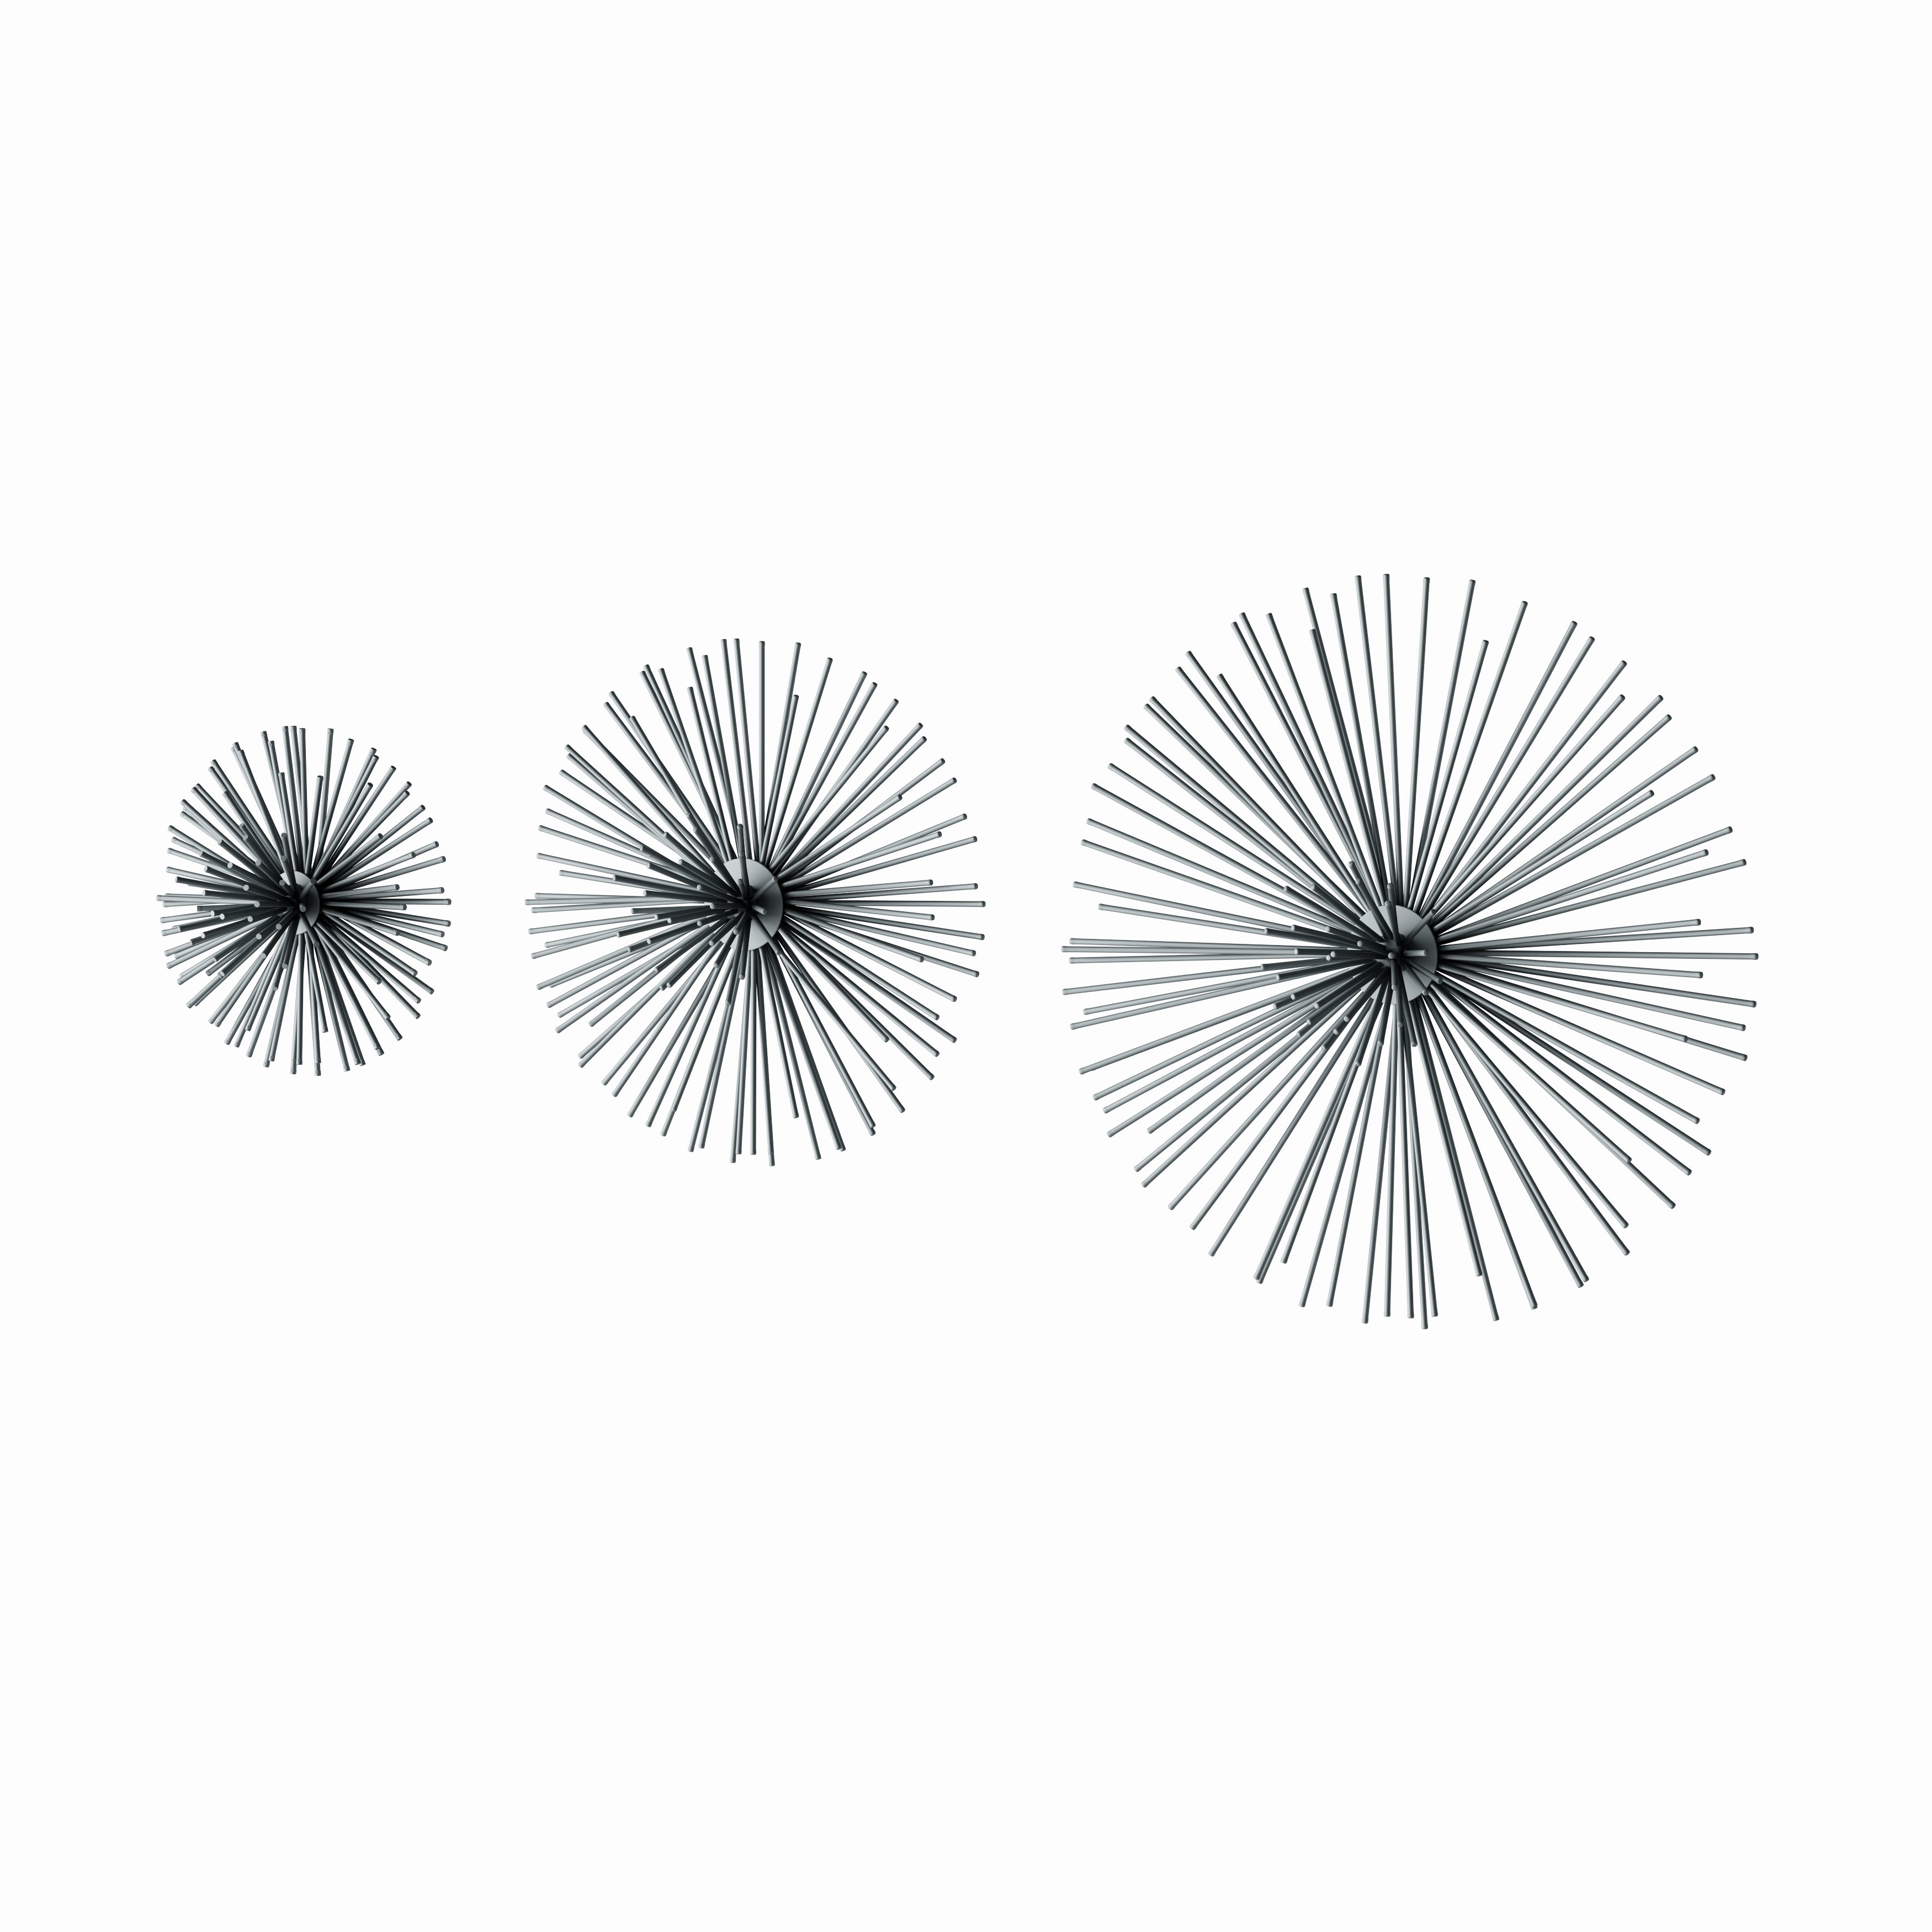 2 Piece Starburst Wall Decor Sets Within Well Liked Shop Contemporary 3D Silver Metal Starburst Wall Decor Sculptures (View 3 of 20)